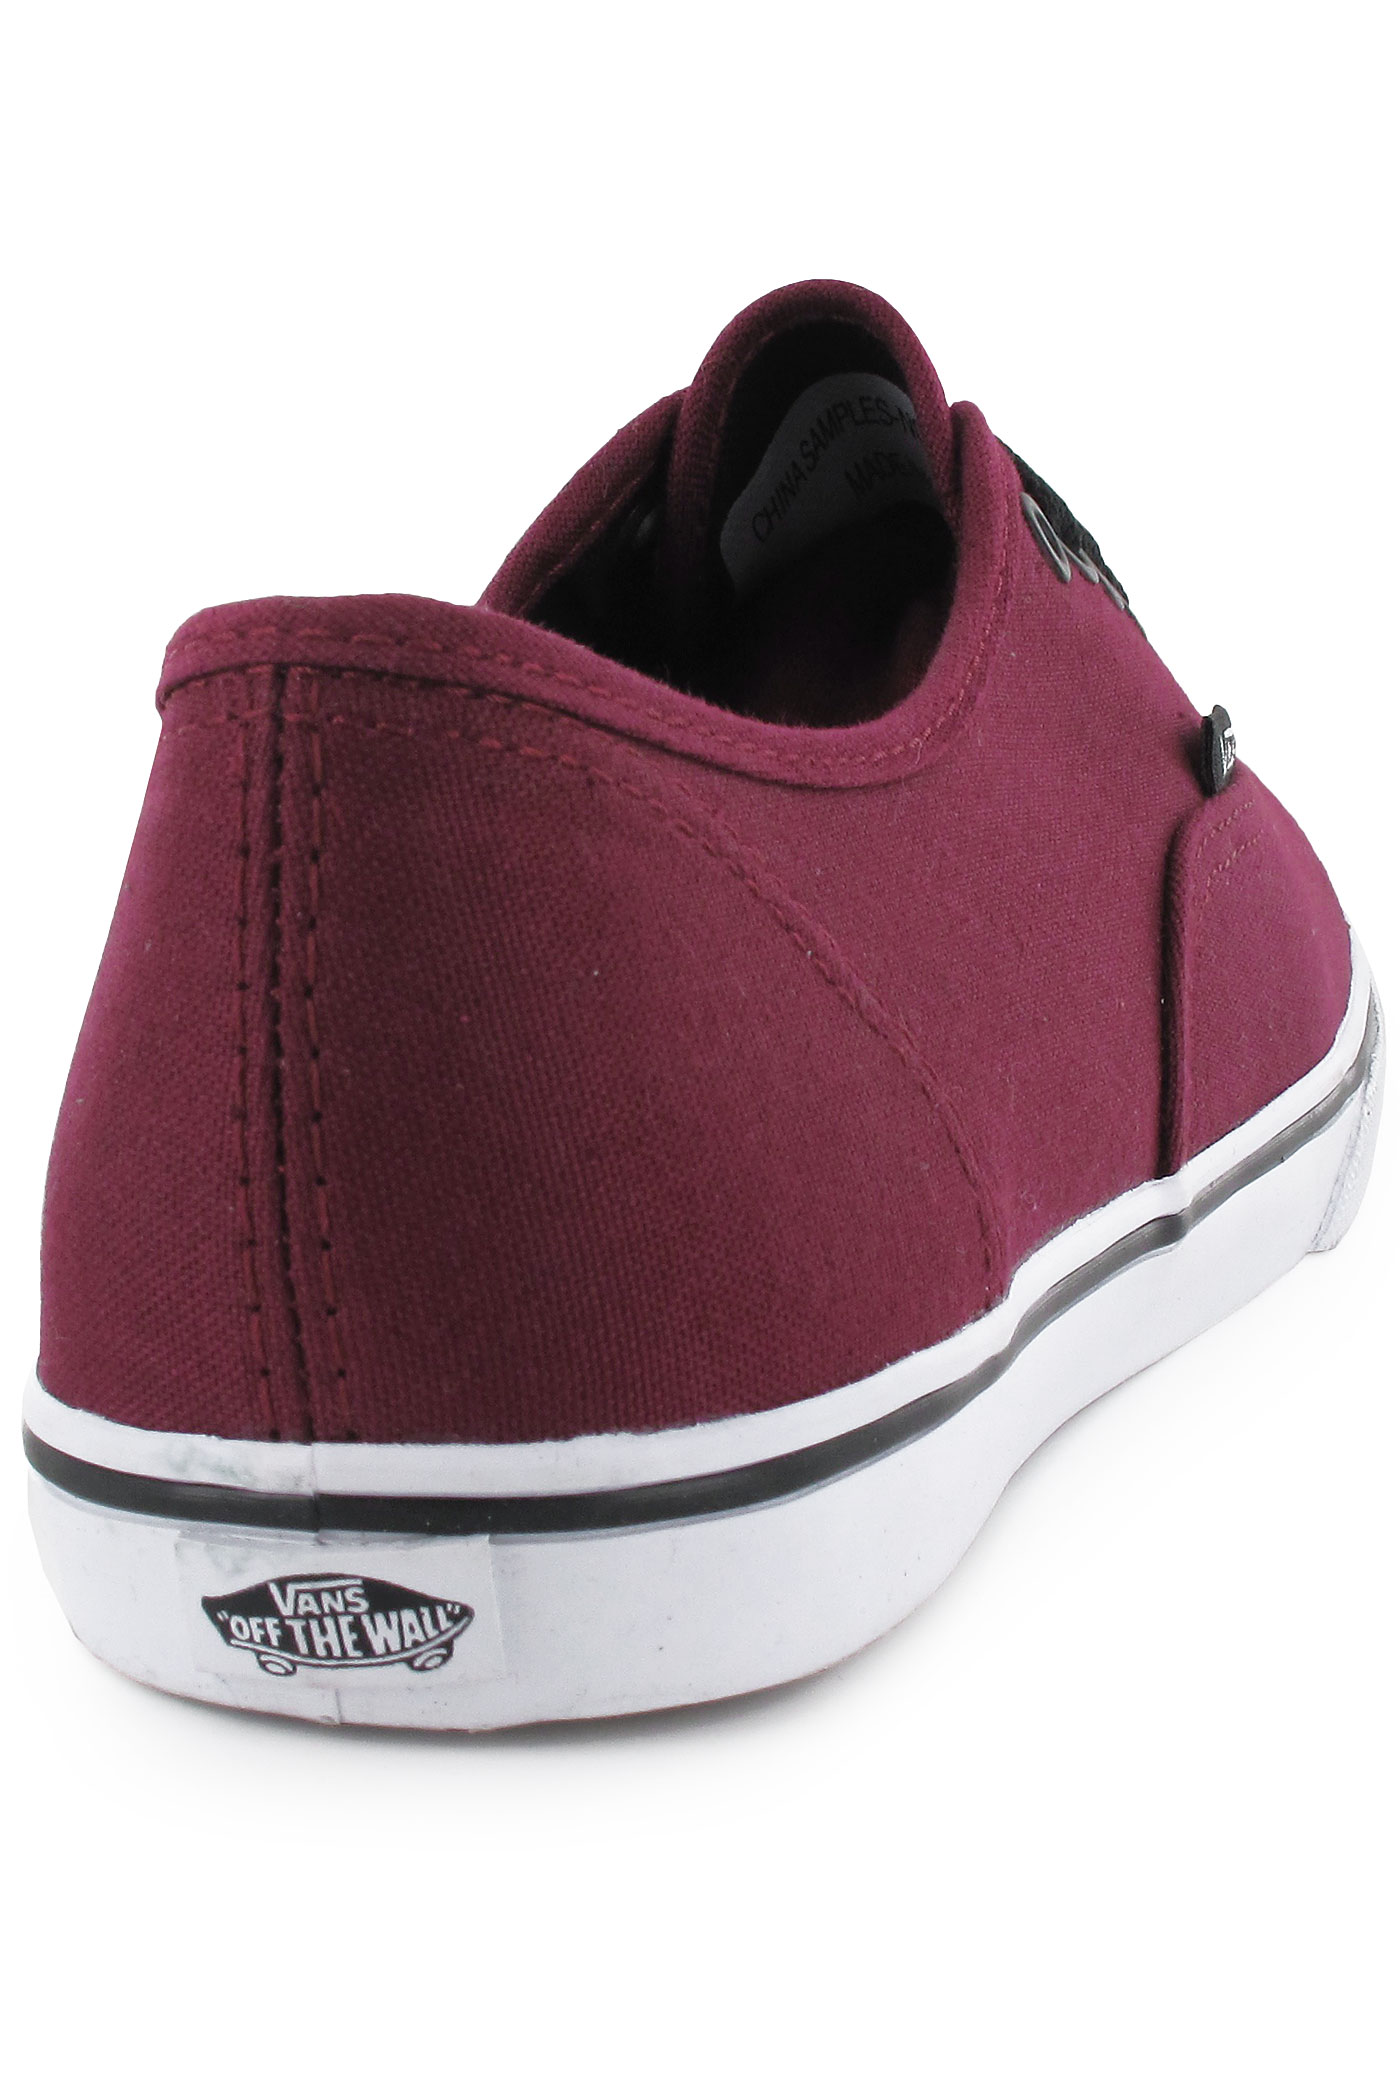 vans authentic lo pro shoes women tawny port true white. Black Bedroom Furniture Sets. Home Design Ideas